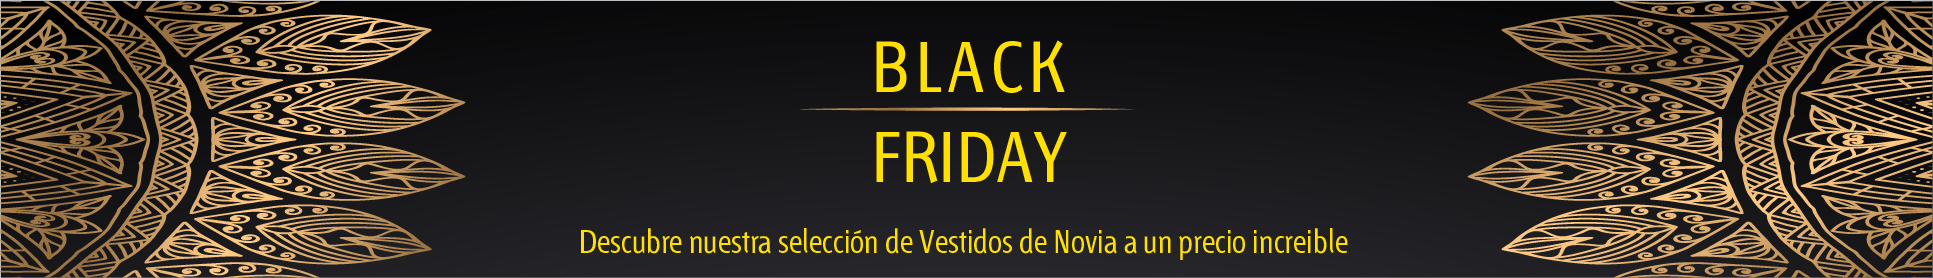 Black Friday en vestidos de novia